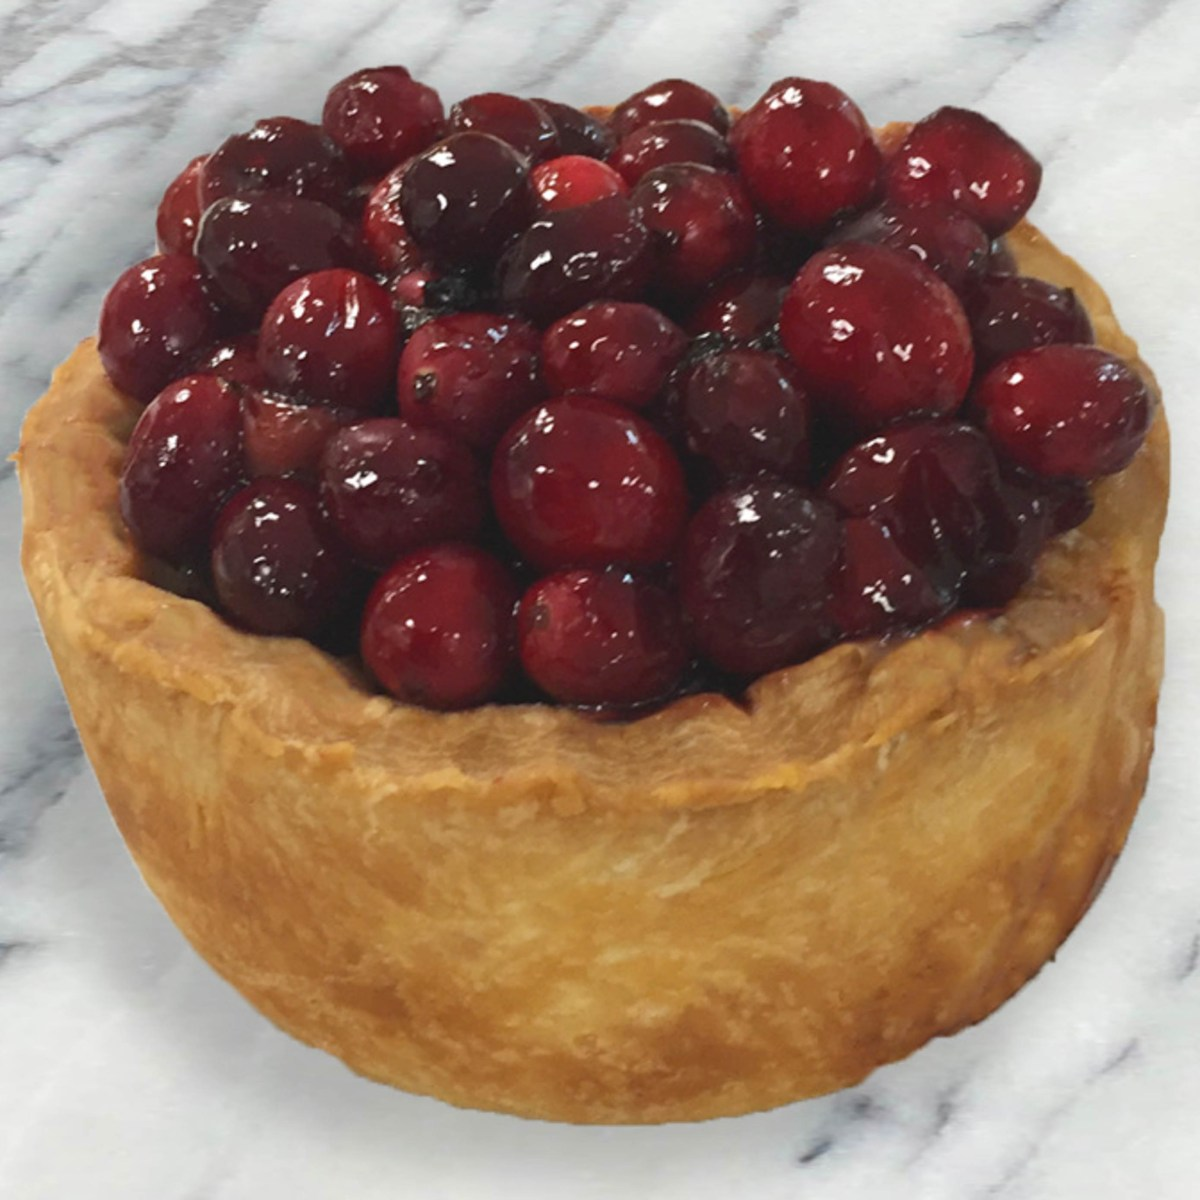 Vension Pies Topped with Port Glazed Cranberries